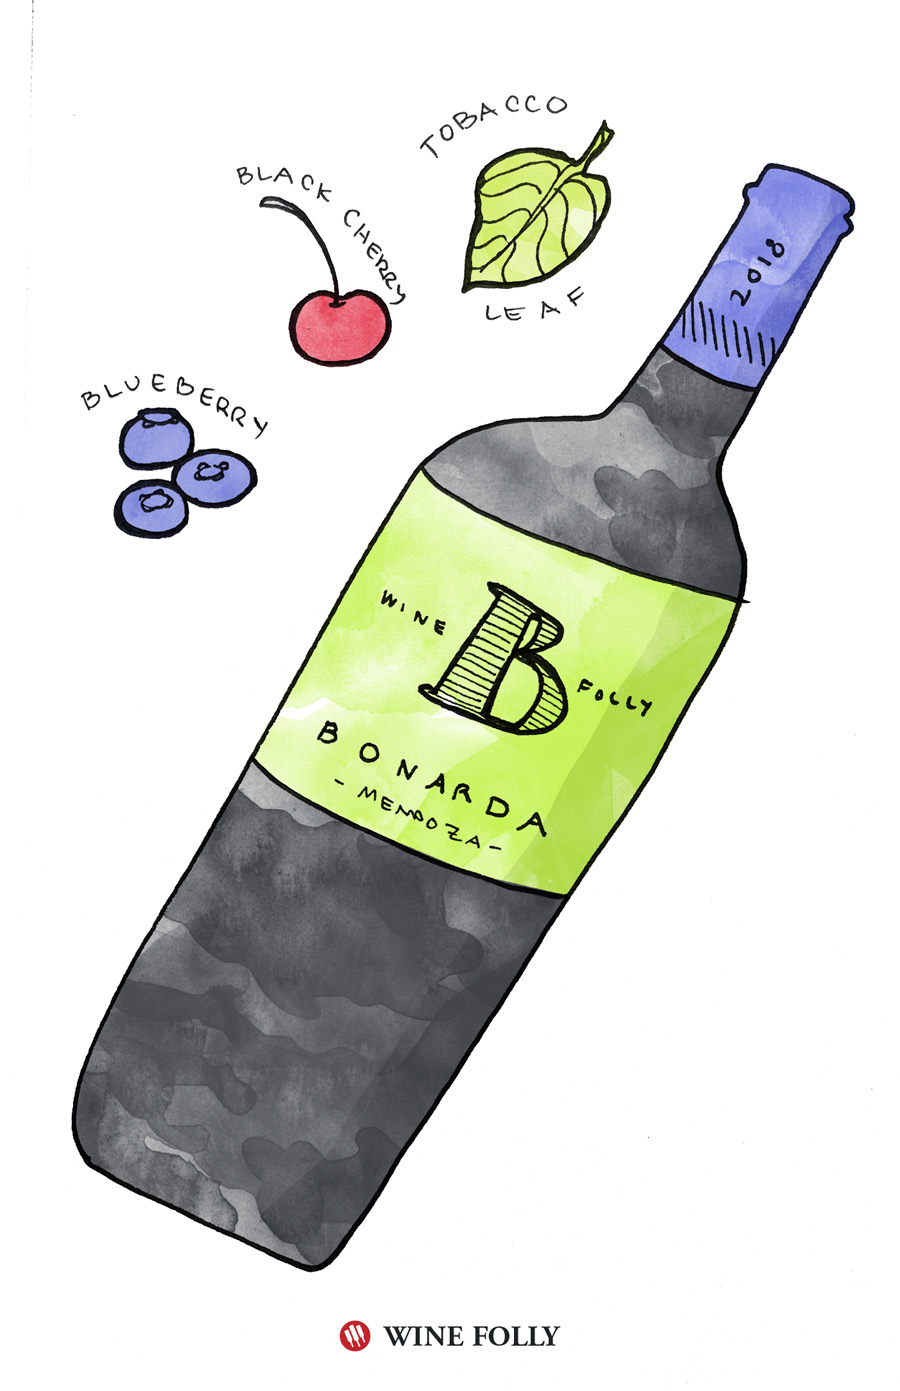 Bonarda Wine Recommendation for Spring Illustration by Wine Folly